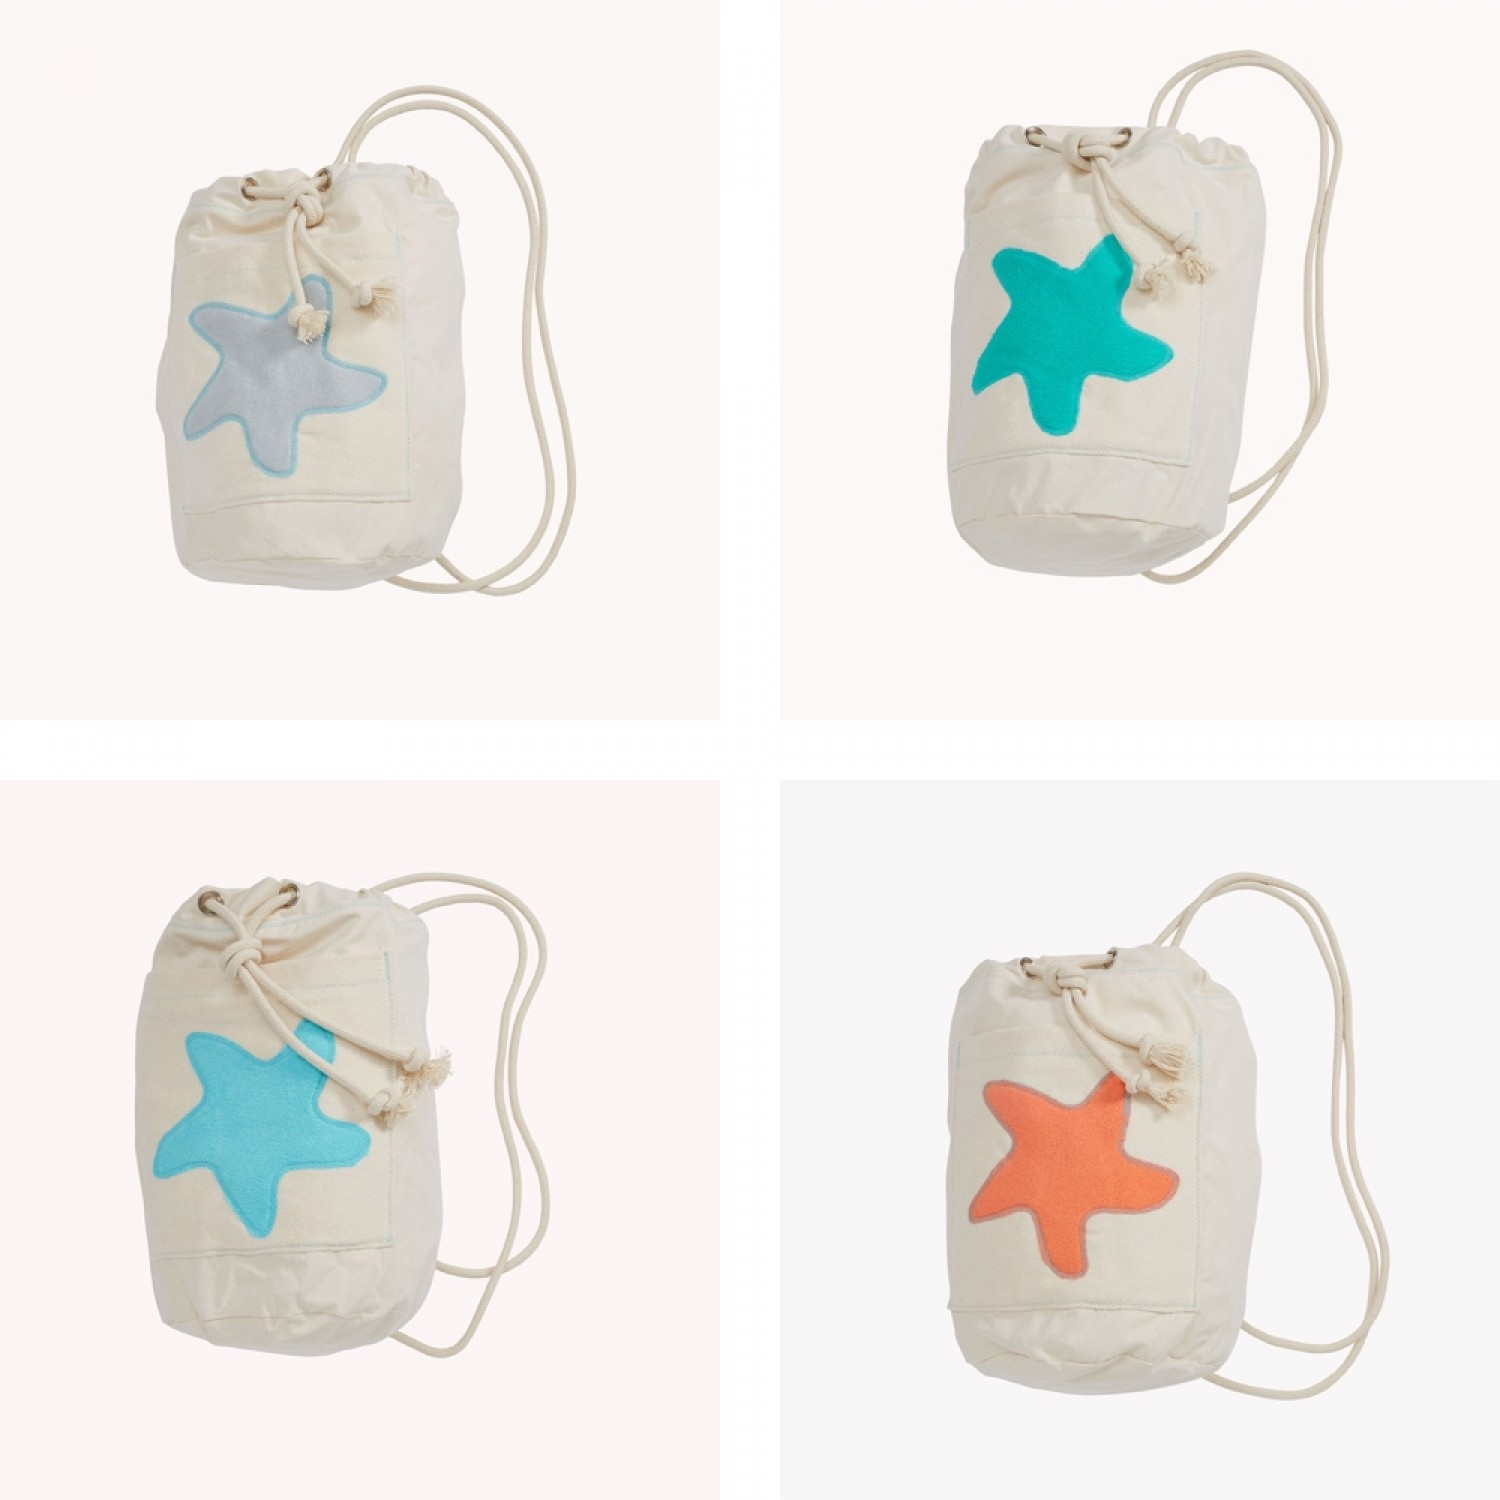 early fish Sea Bag with Starfish, GOTS Organic Cotton